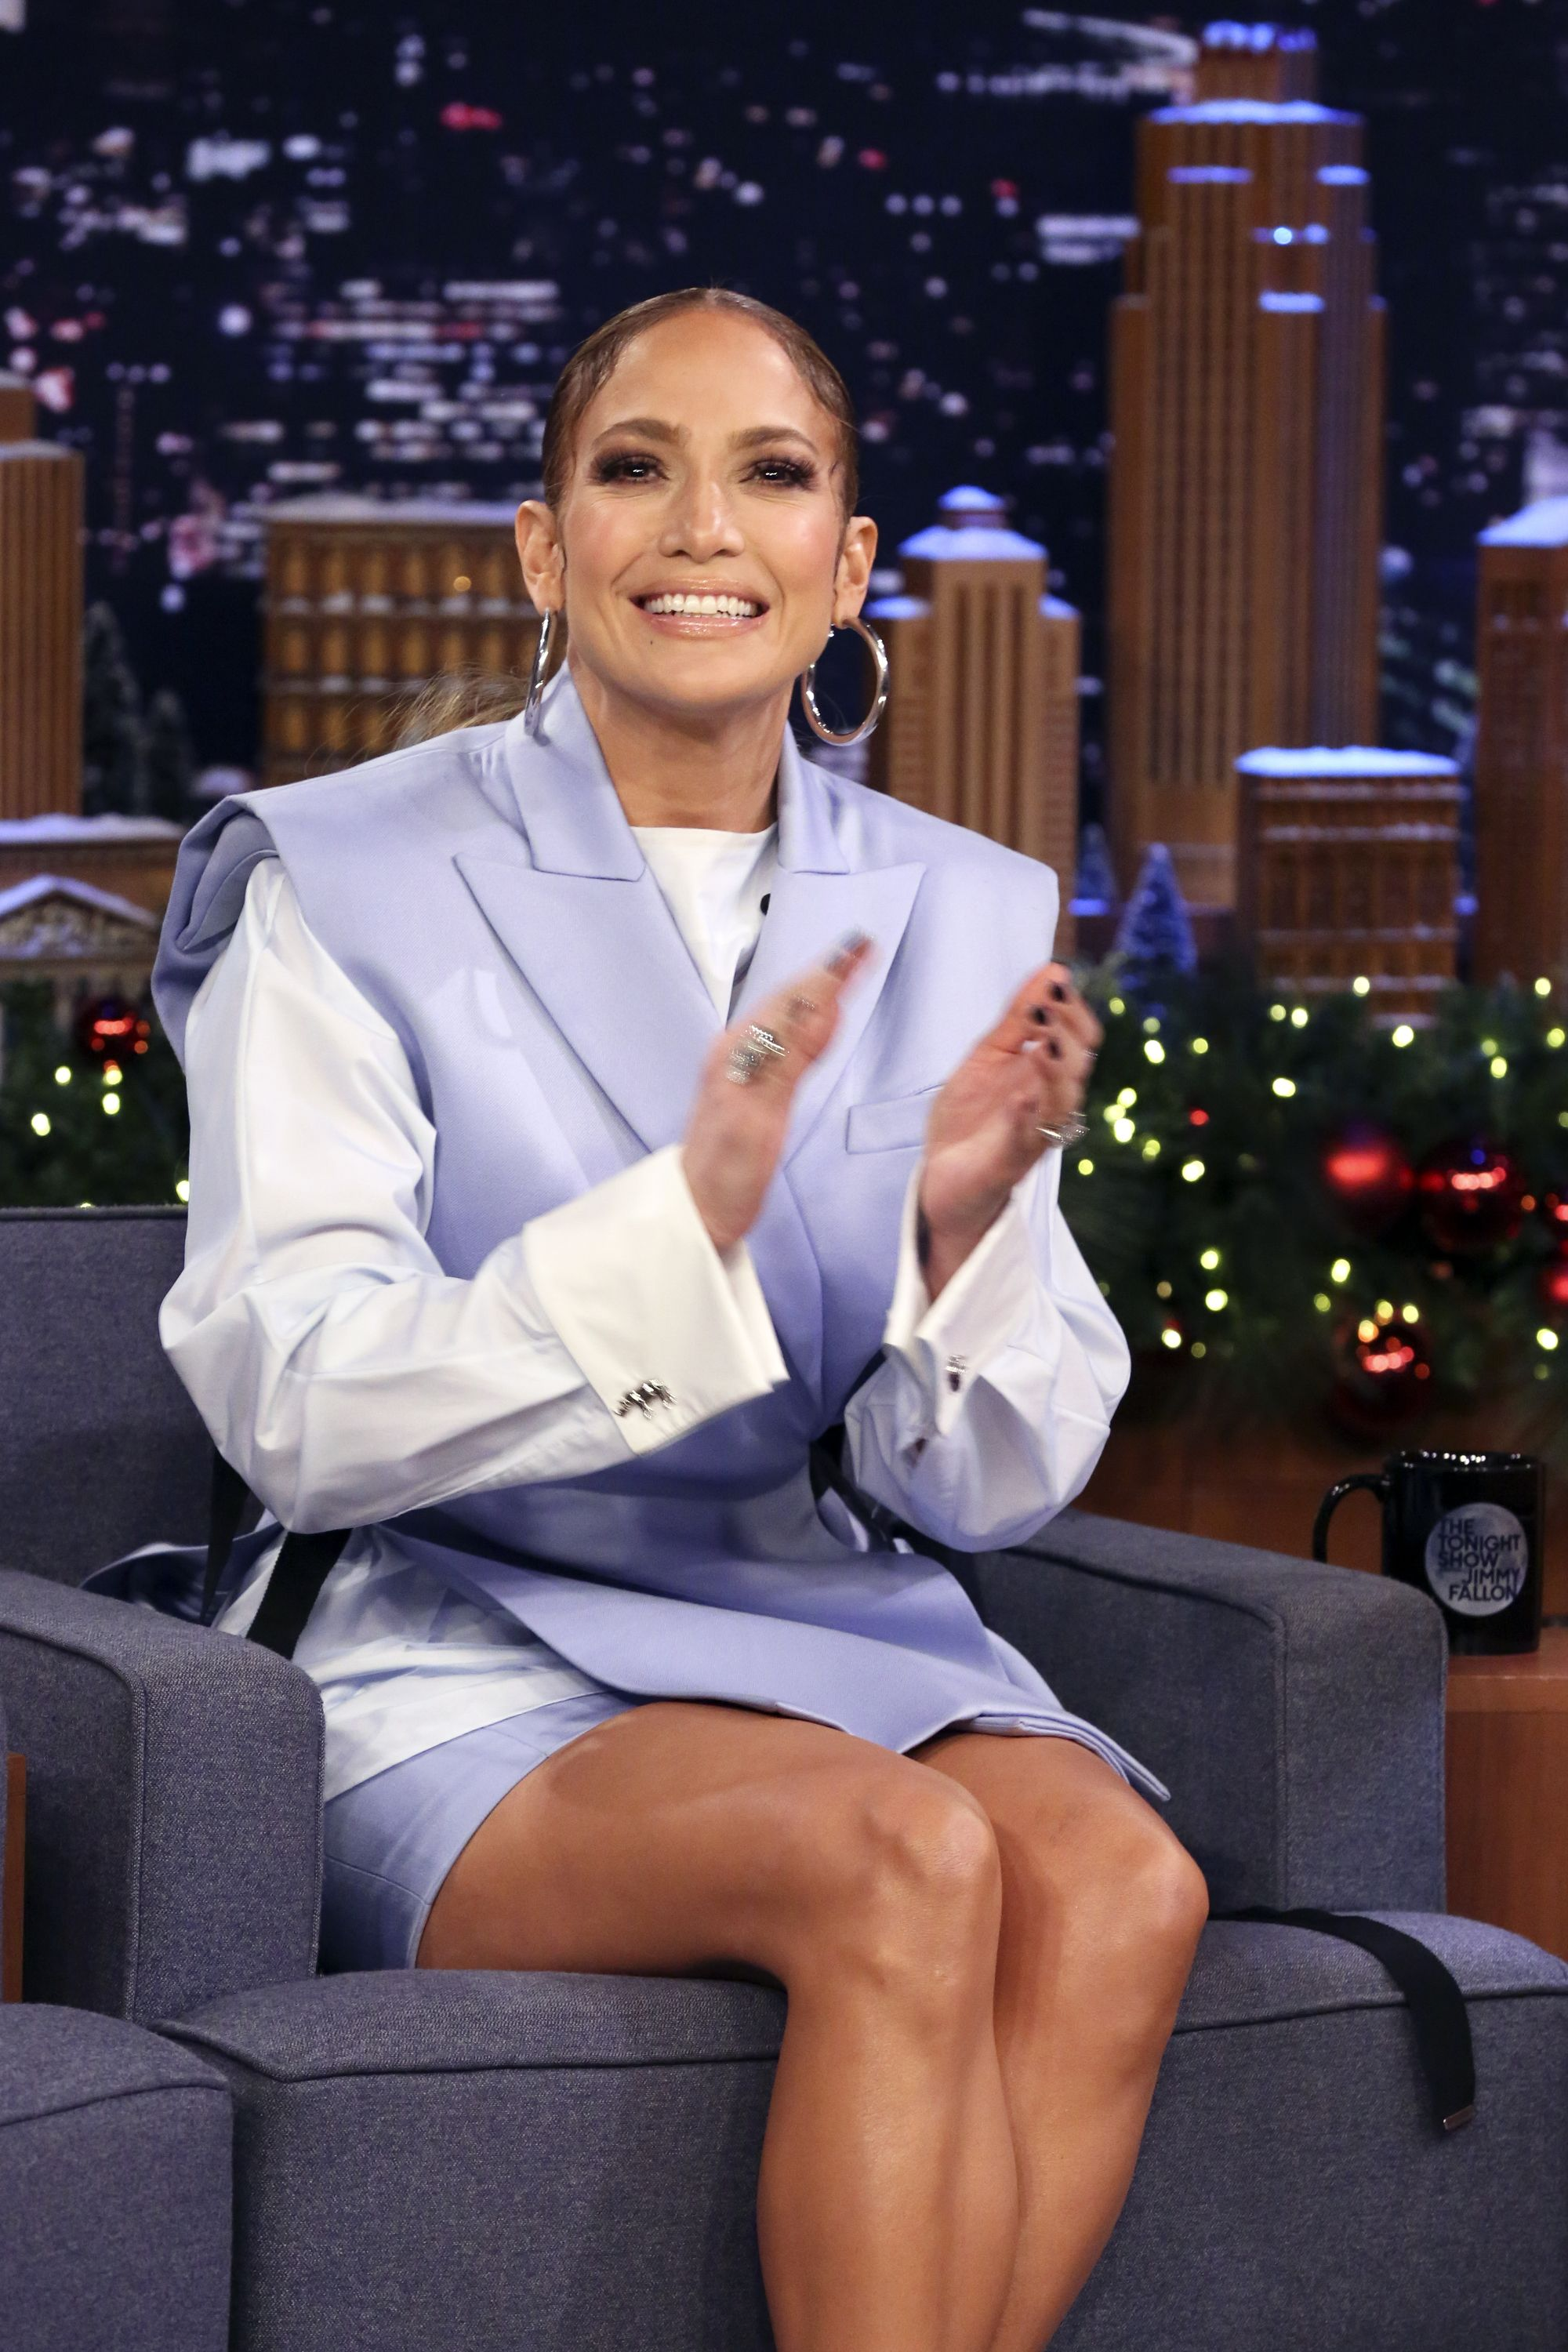 Jennifer Lopez Does Hilarious Impression of Every OTT Fitness Instructor You've Ever Had